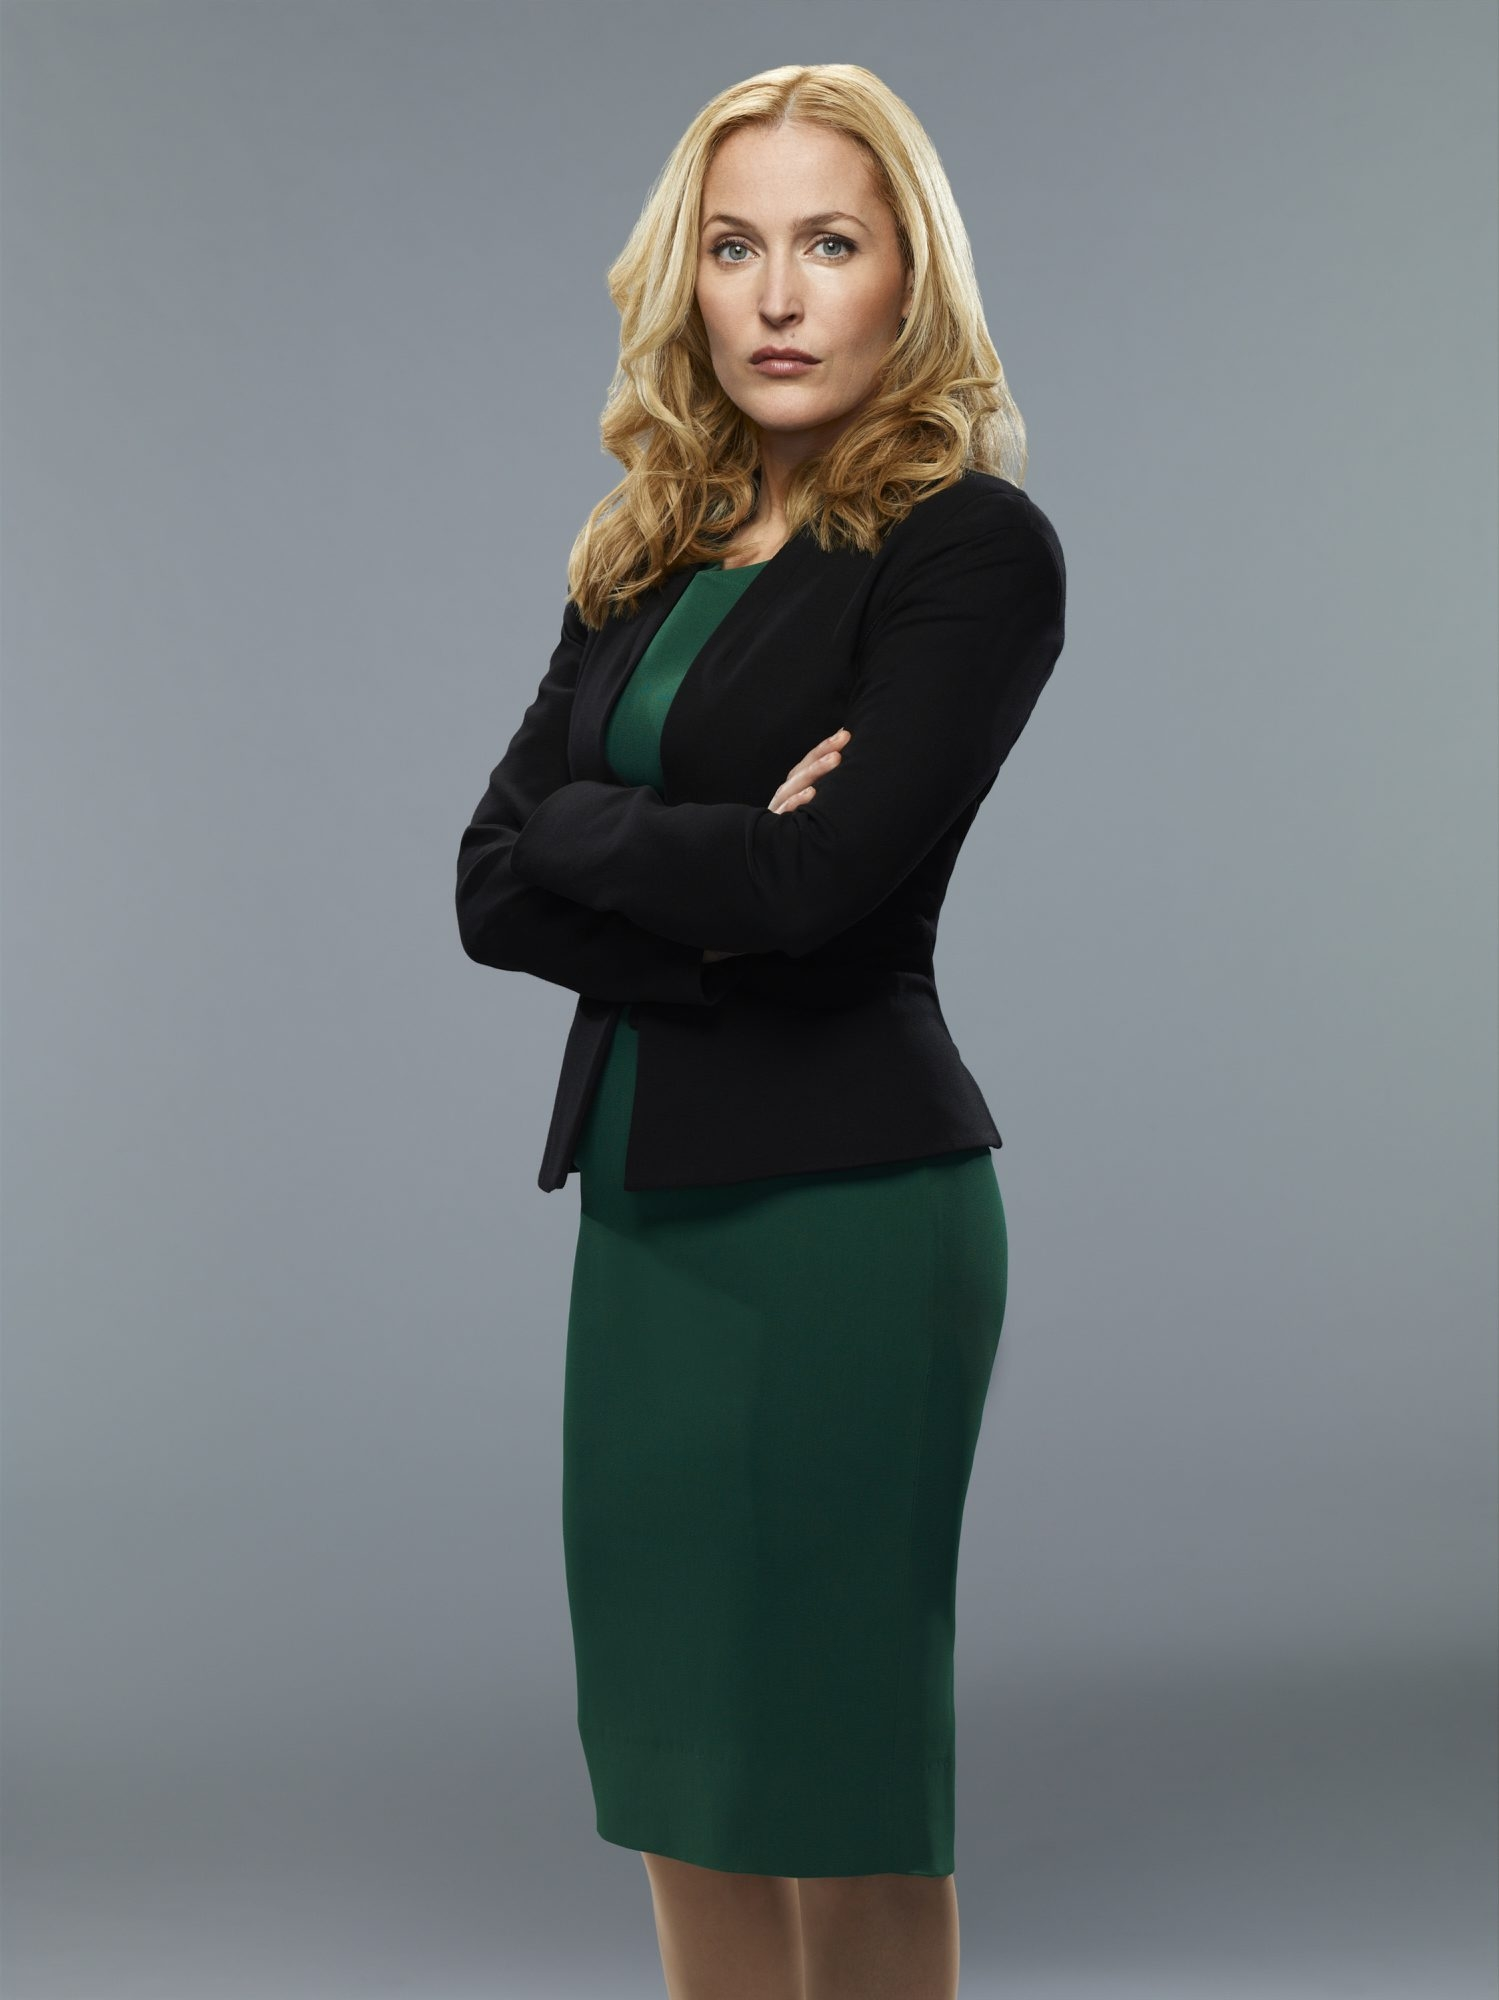 """Gillian Anderson stars as a high-powered CEO in NBC's """"Crisis."""""""